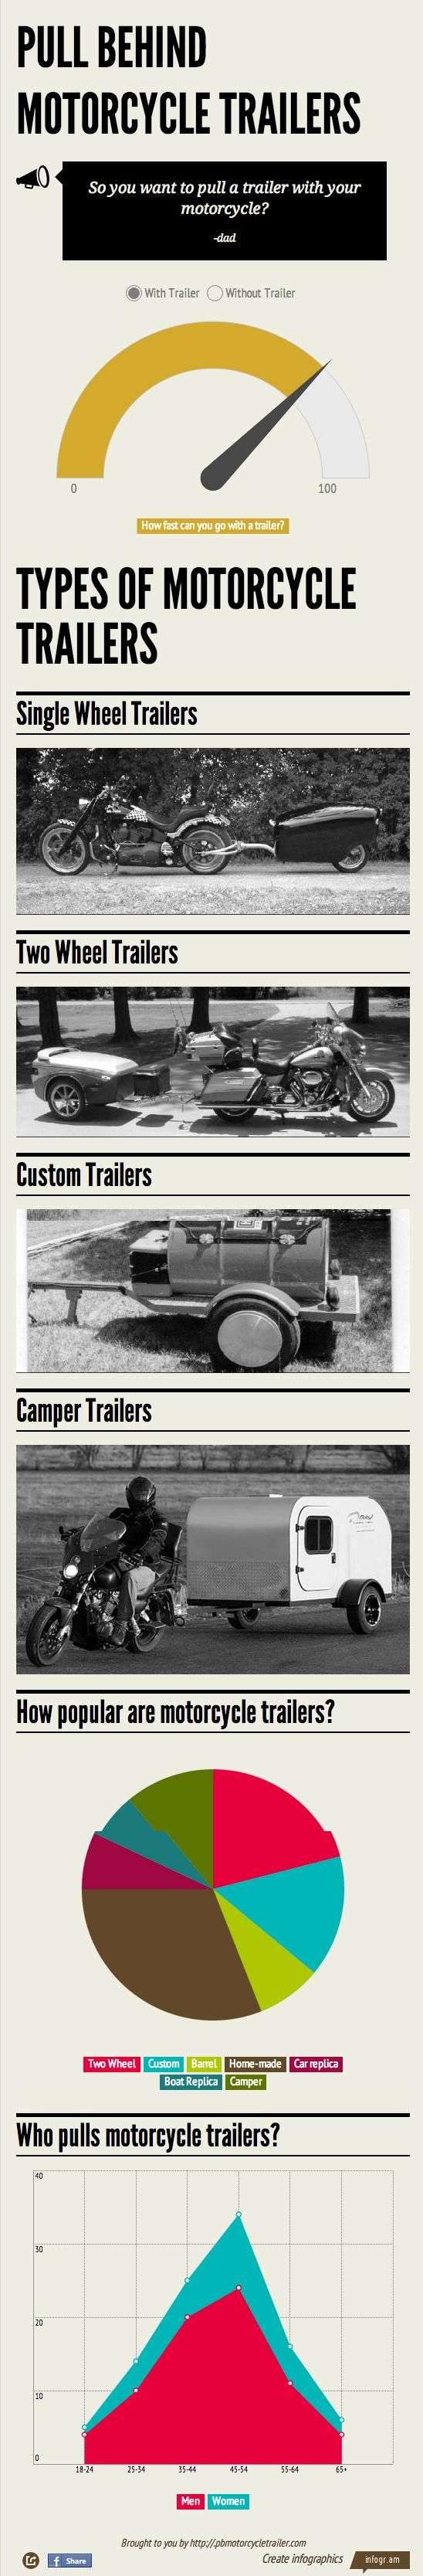 Pull Behind Motorcycle Trailers, who pulls them and what do they pull?